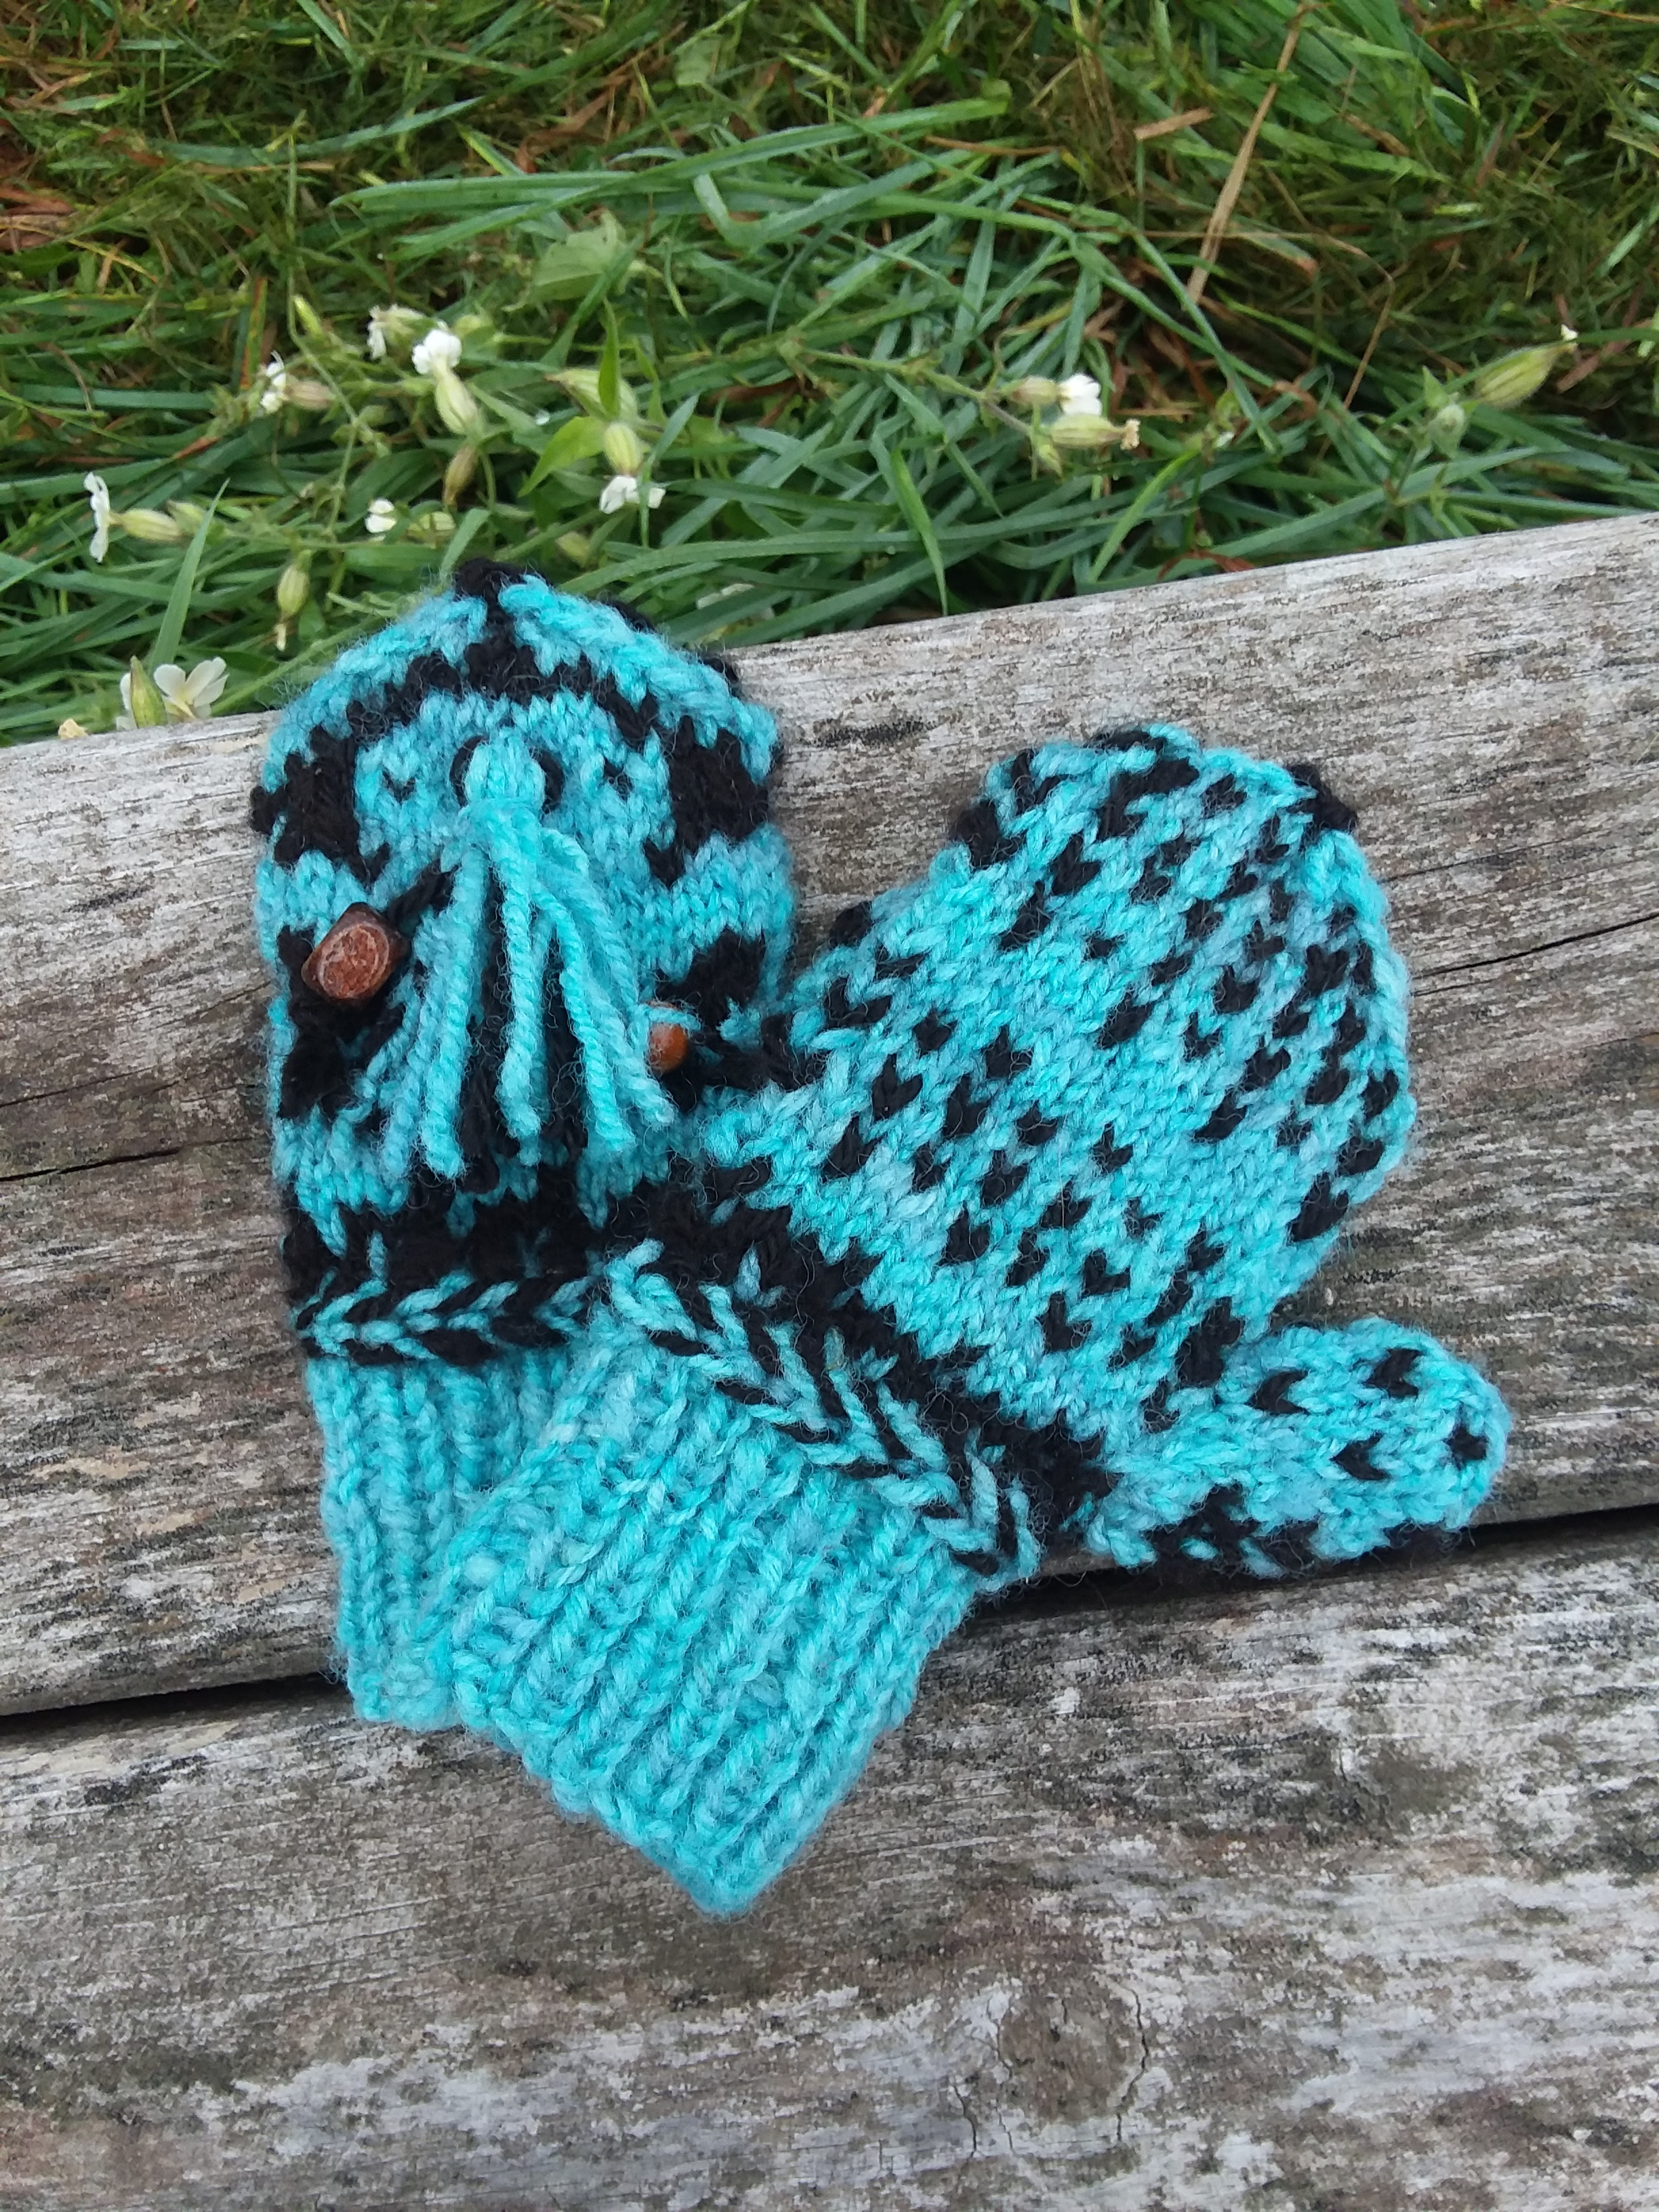 Front and backside views of my 4T mittens. Made from handspun, hand dyed wool and handspun natural black alpaca yarns.